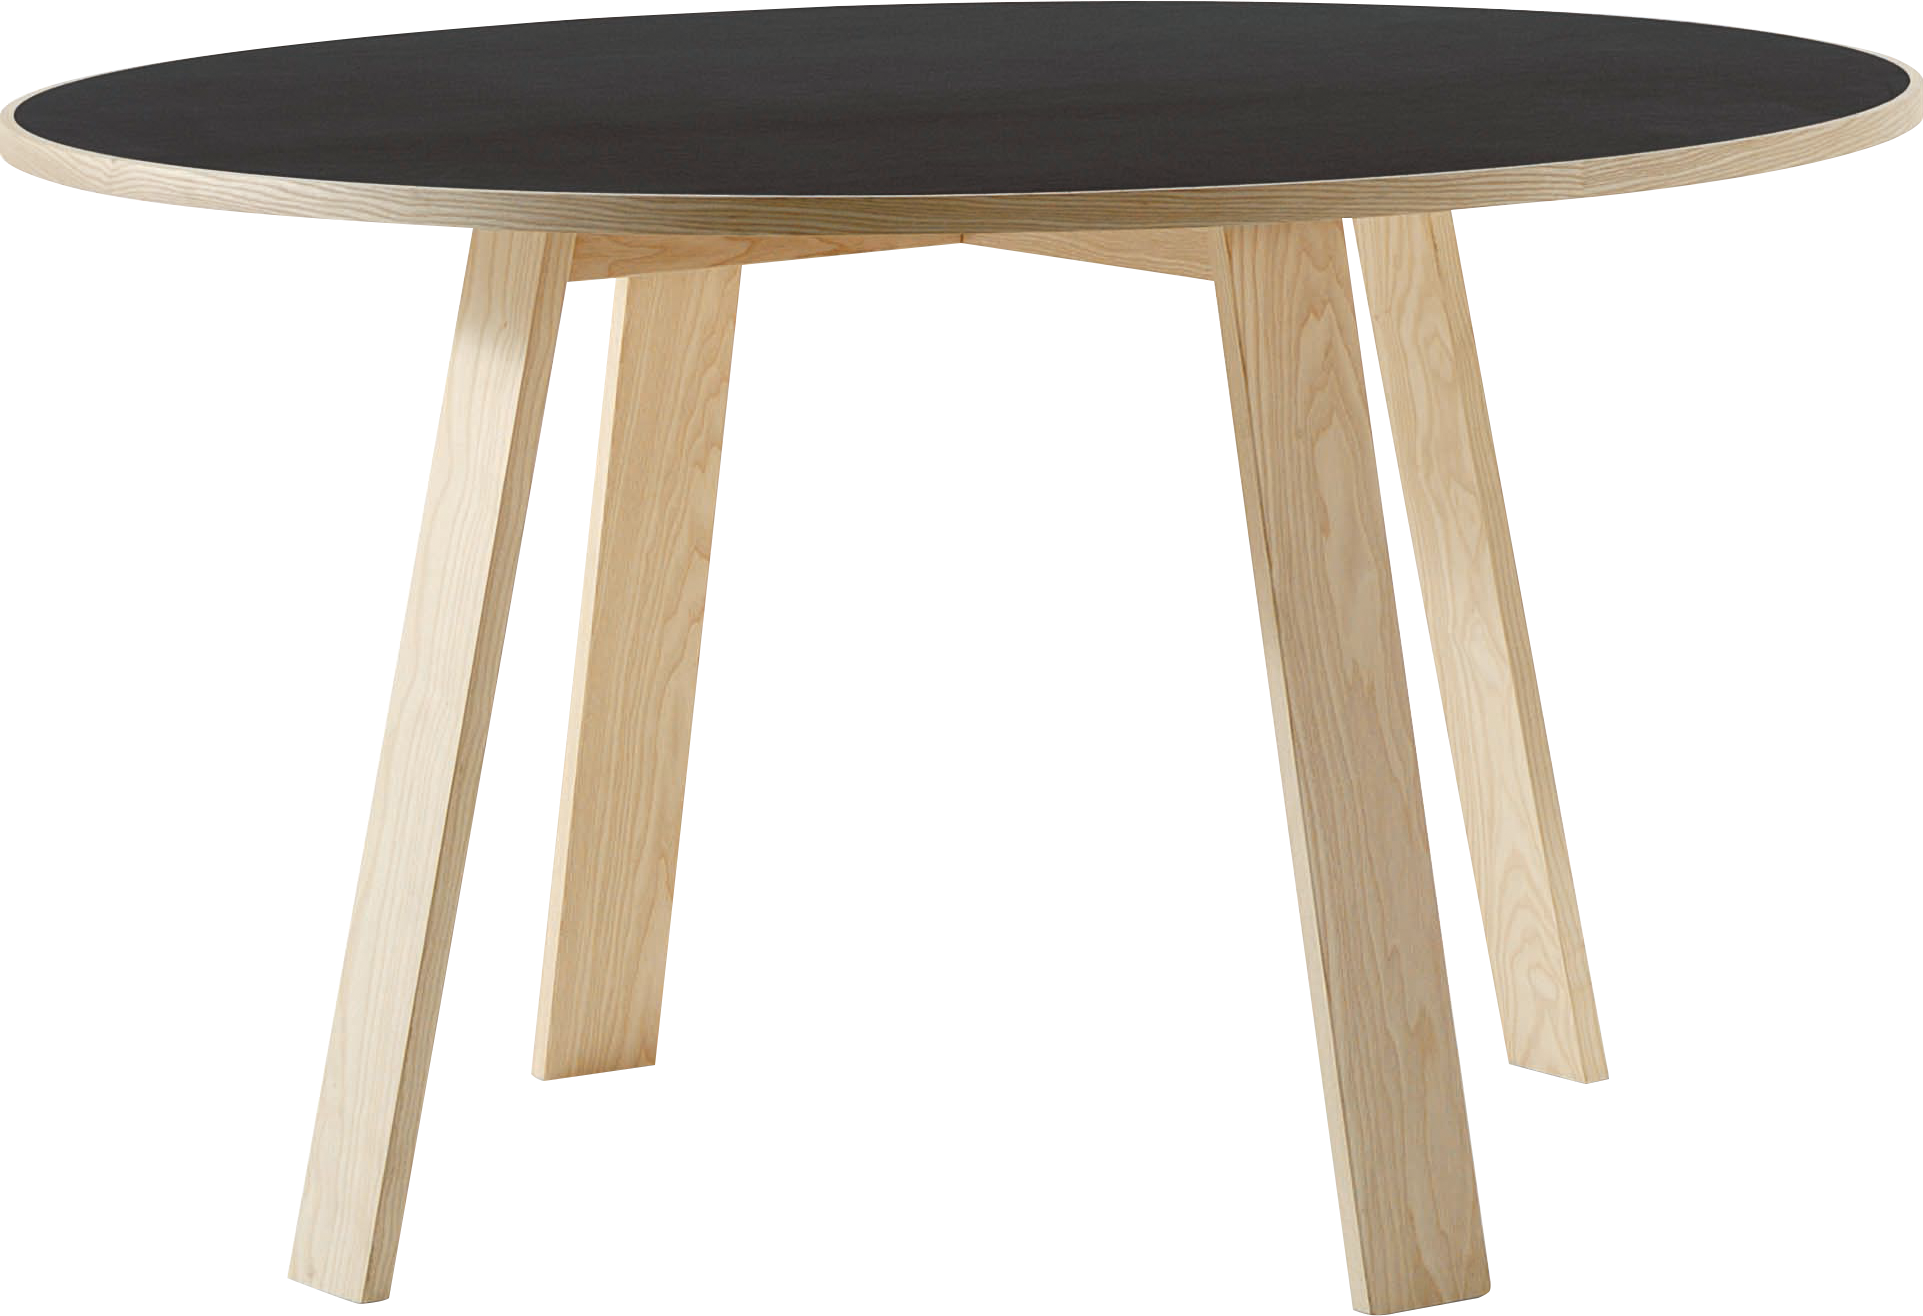 Clipart table stool. Png image free download